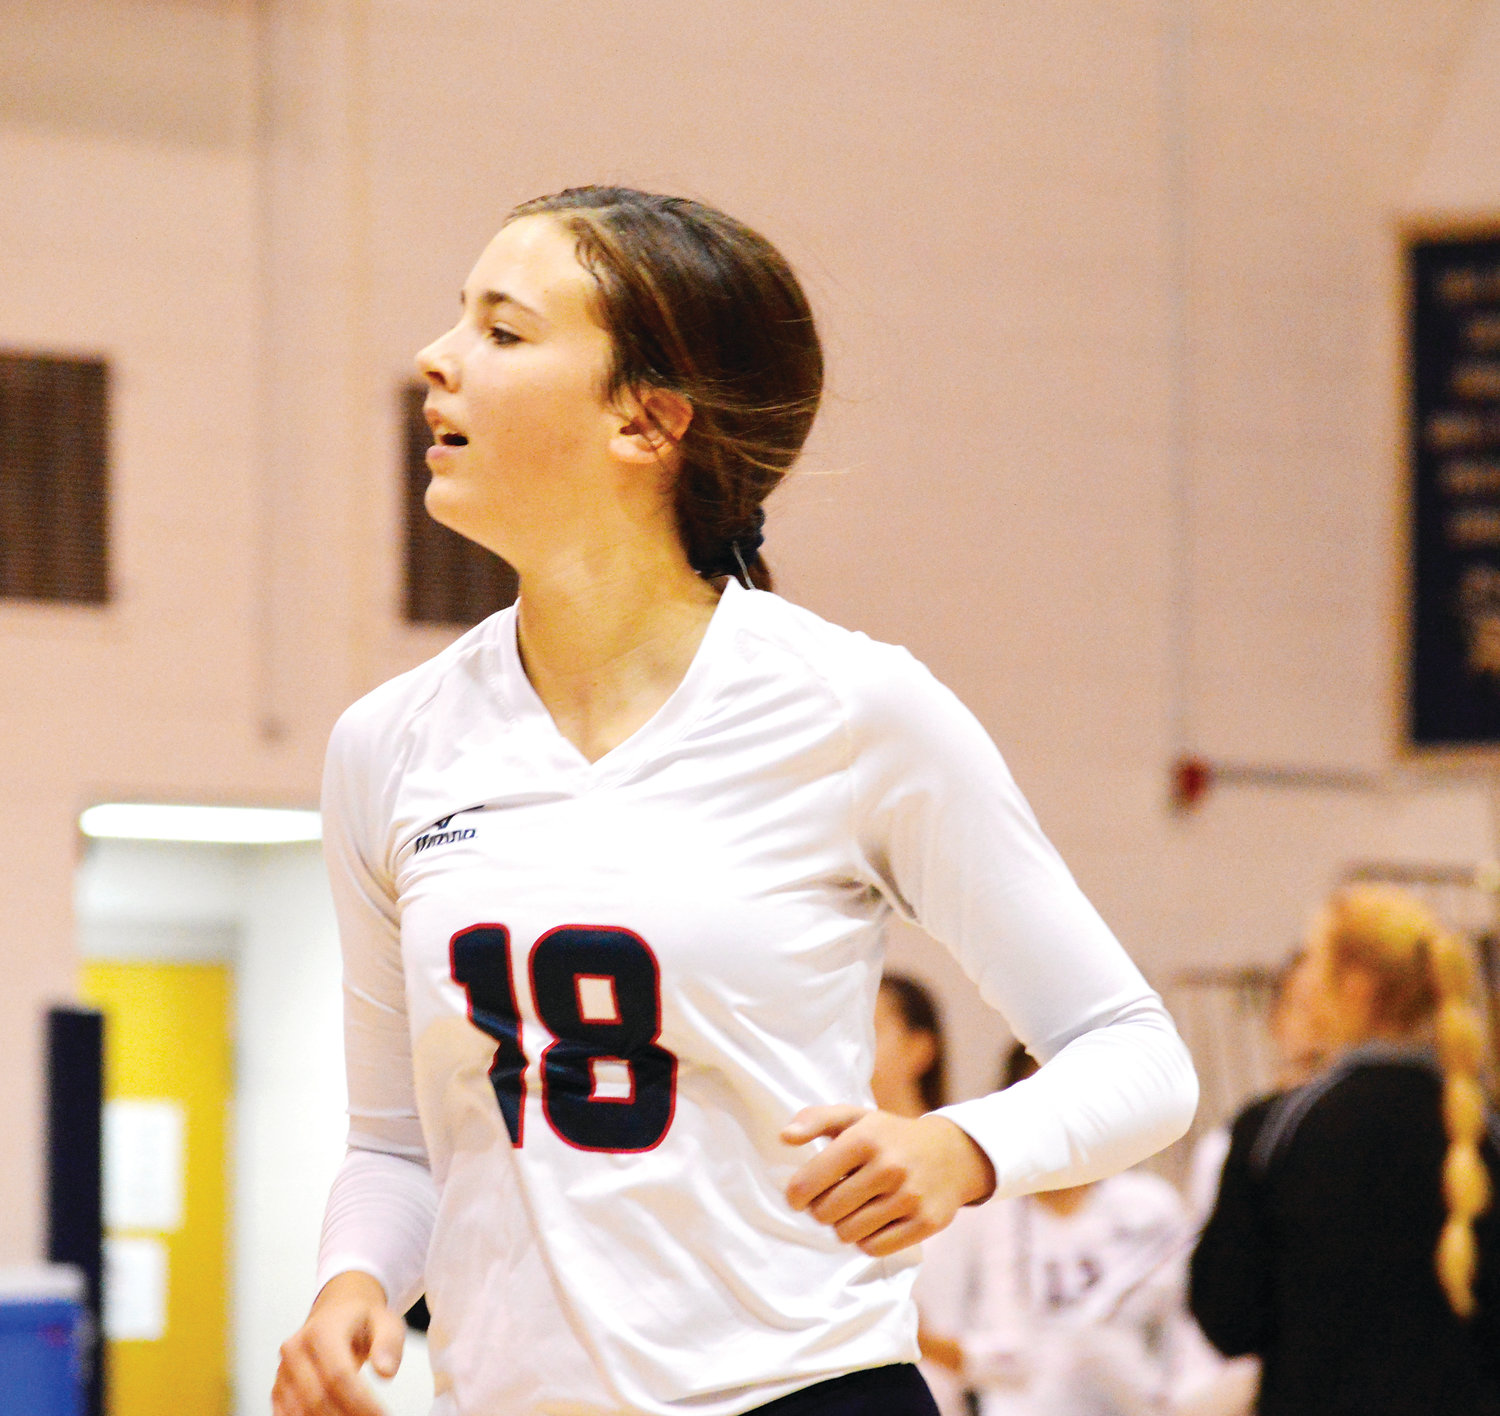 Chaparral junior Emma Ammerman had a combined 29 assists in two Region 1 playoff matches on Nov. 3. She had 16 assists in a 3-0 win over Columbine and had 13 assists in a 3-0 triumph over Horizon. The Wolverines will be the Class 5A top-seeded team in the Nov 8-10 CHSAA state volleyball tournament at the Denver Coliseum. Chaparral draws a first round bye in the double elimination format and will open play on Nov. 8 against the winner of the Denver East-Chatfield match.